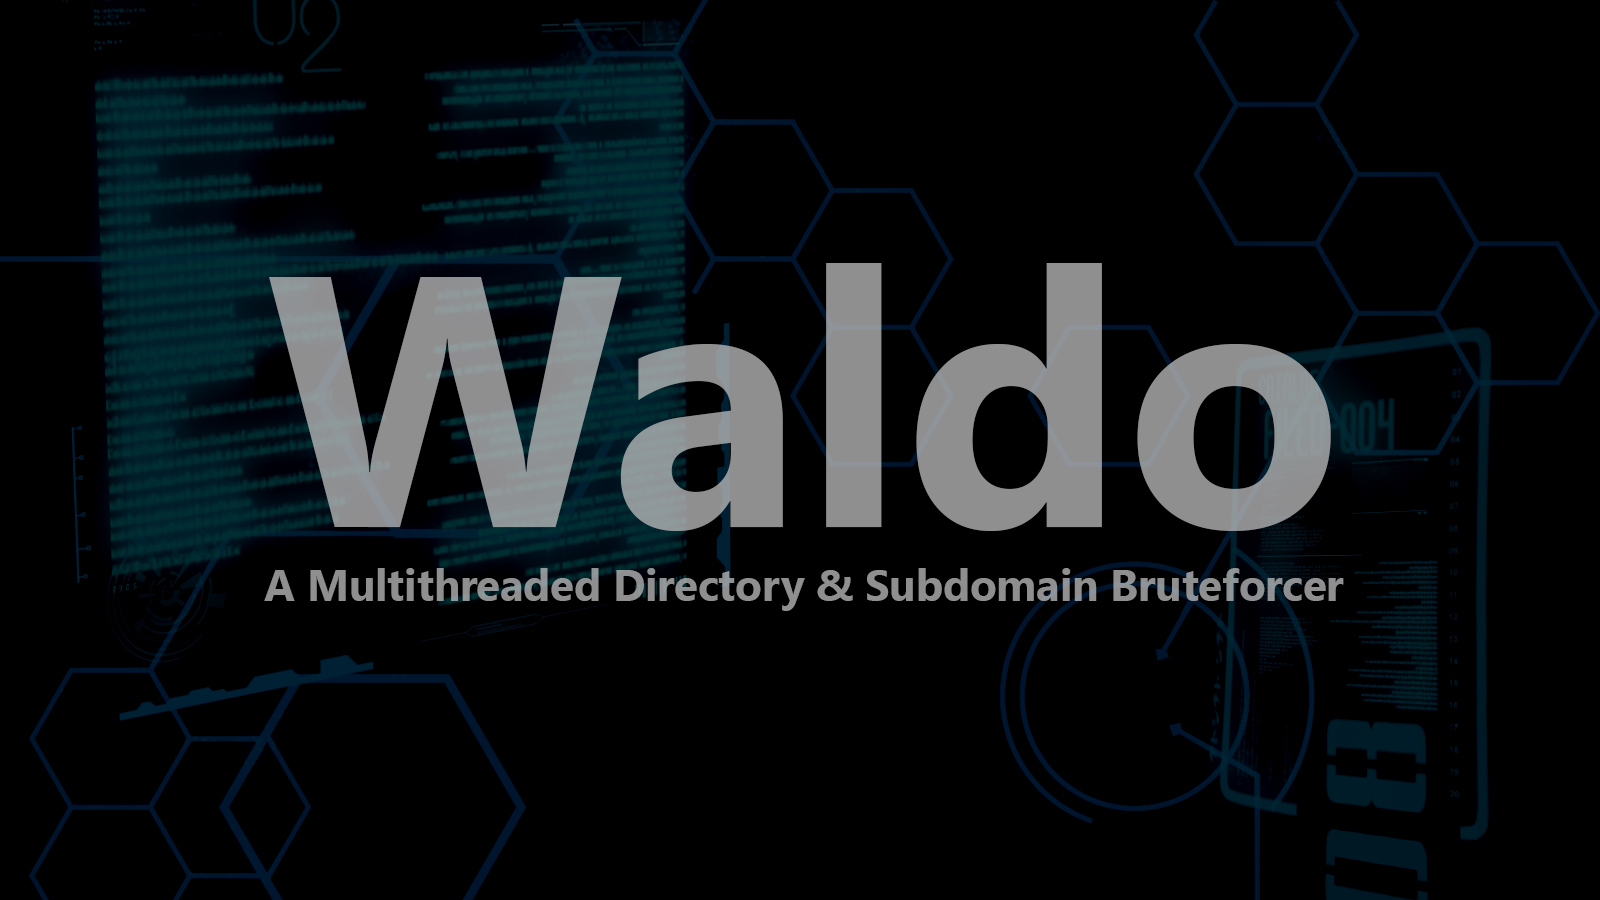 Waldo - A Multithreaded Directory & Subdomain Bruteforcer